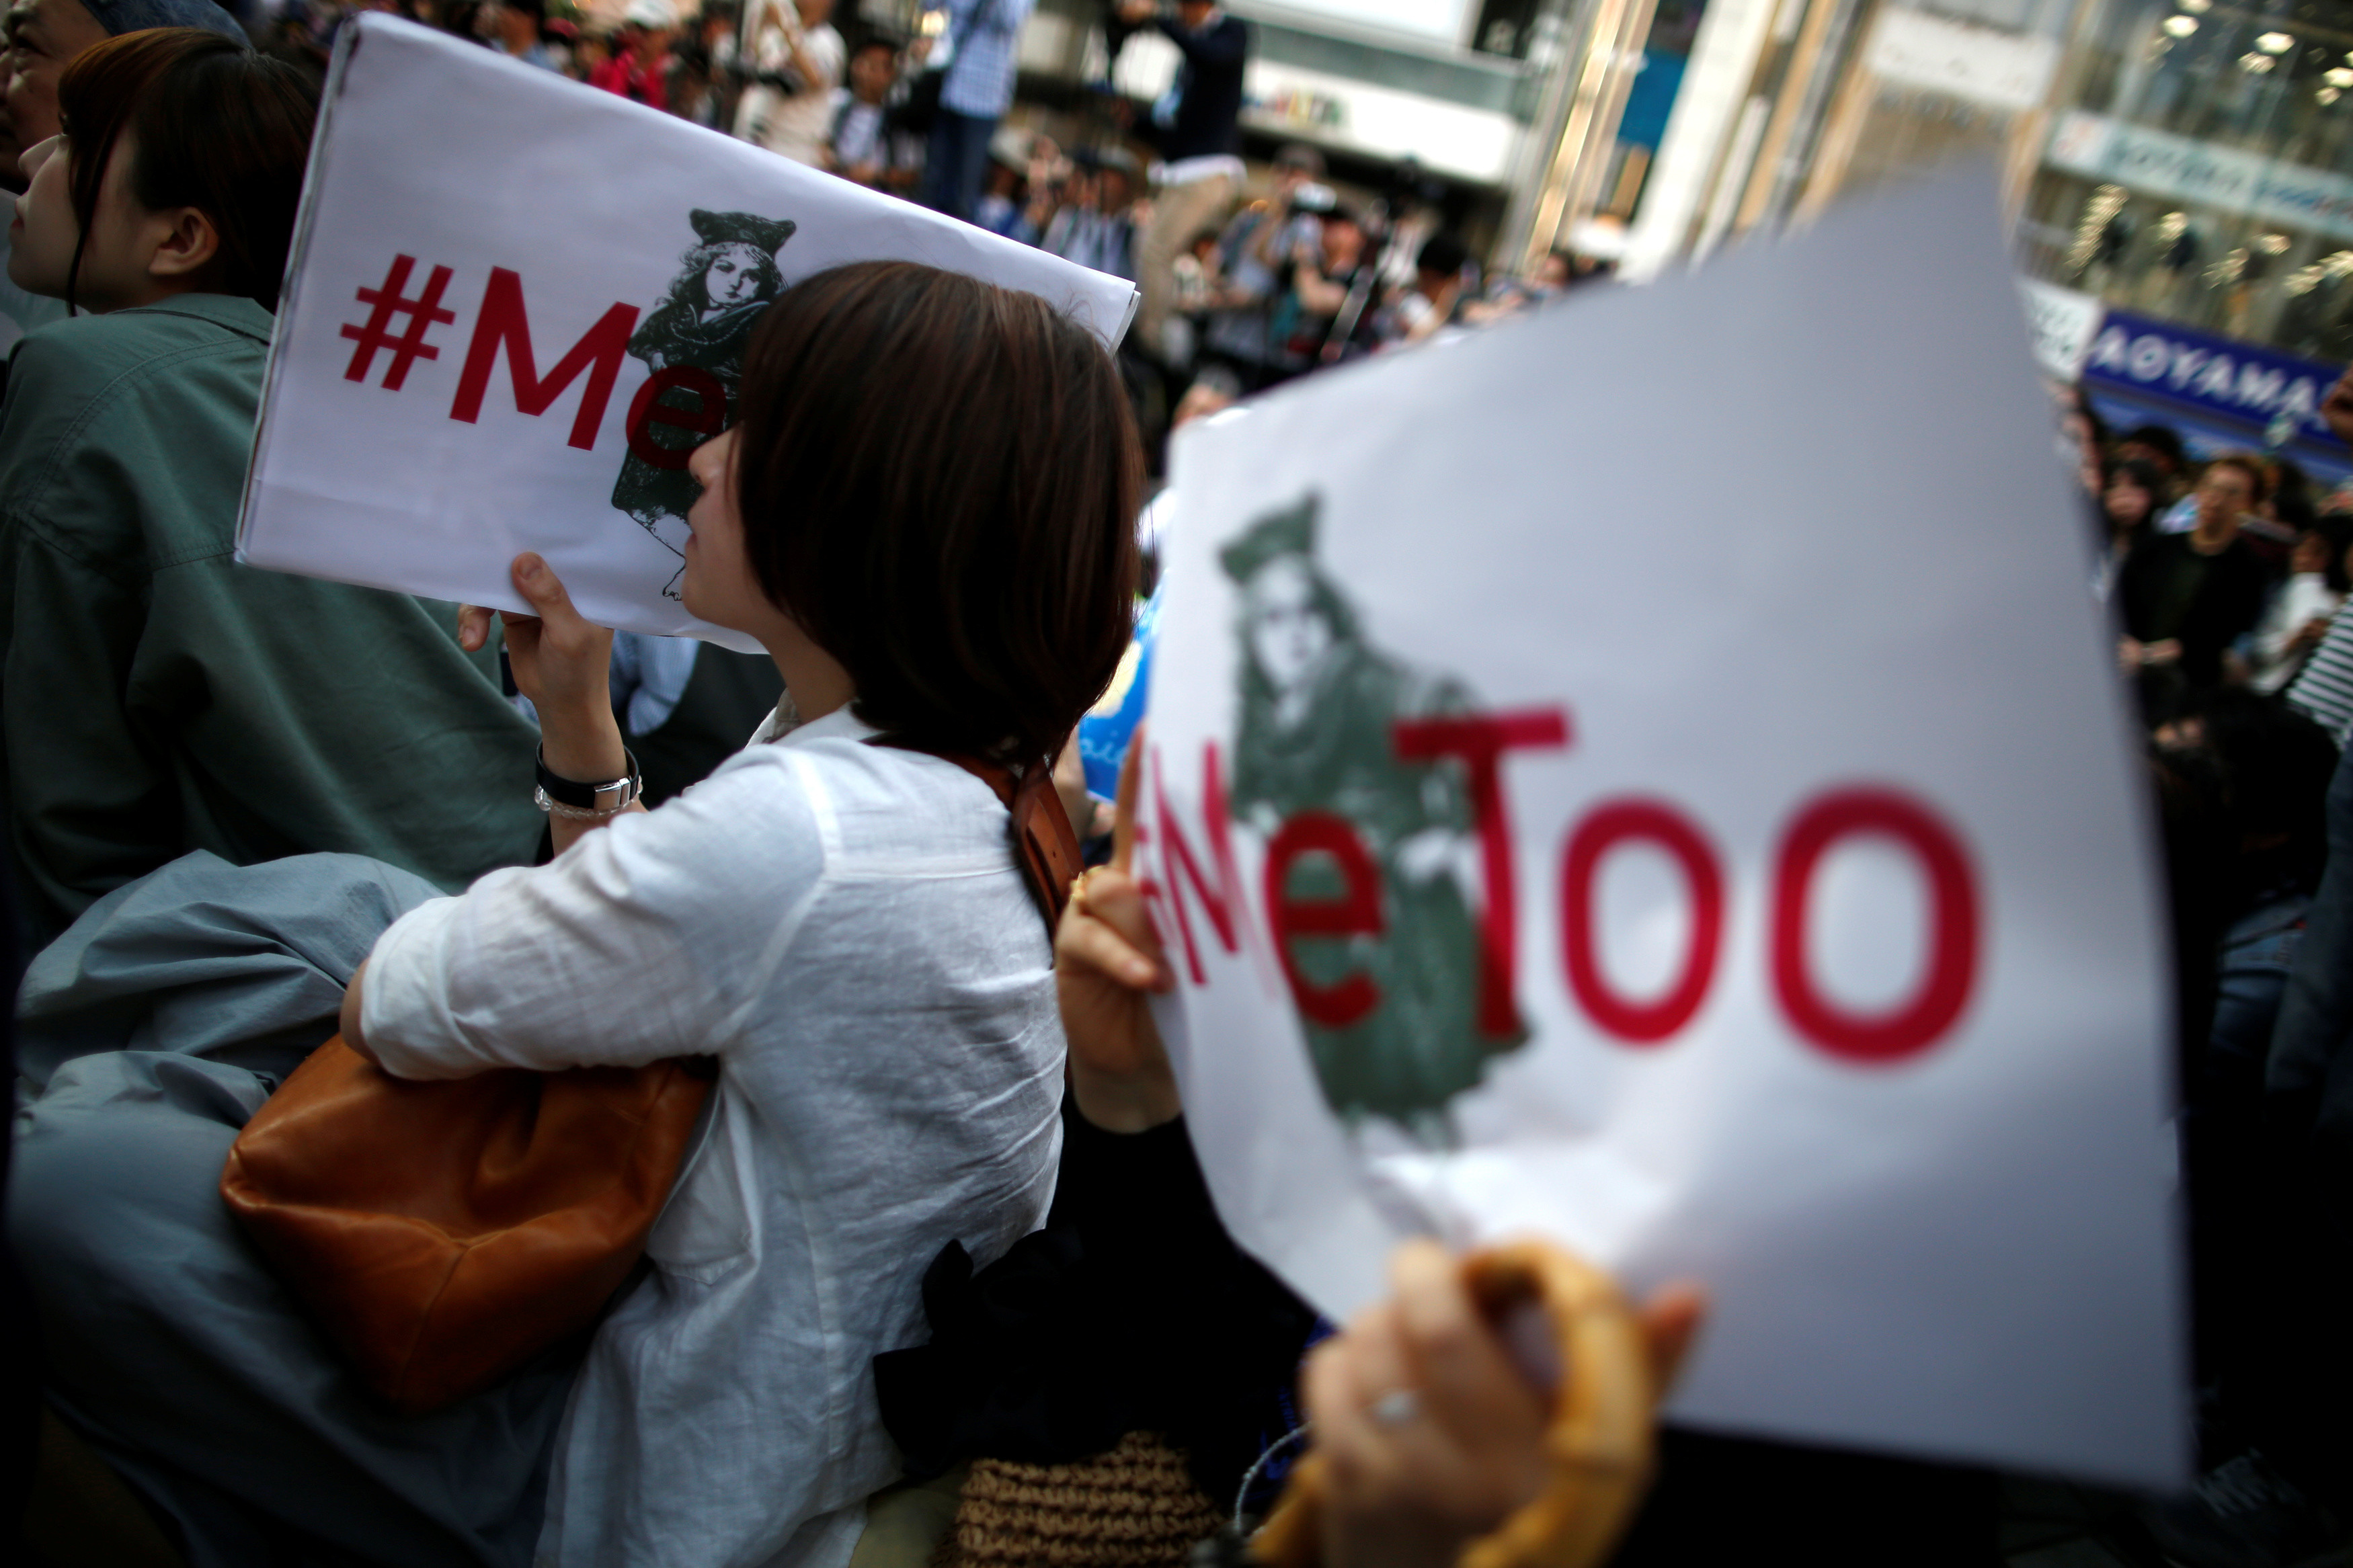 The #MeToo protests are part of a rising worldwide social justice movement that is driving corporate uptake of ESG principles